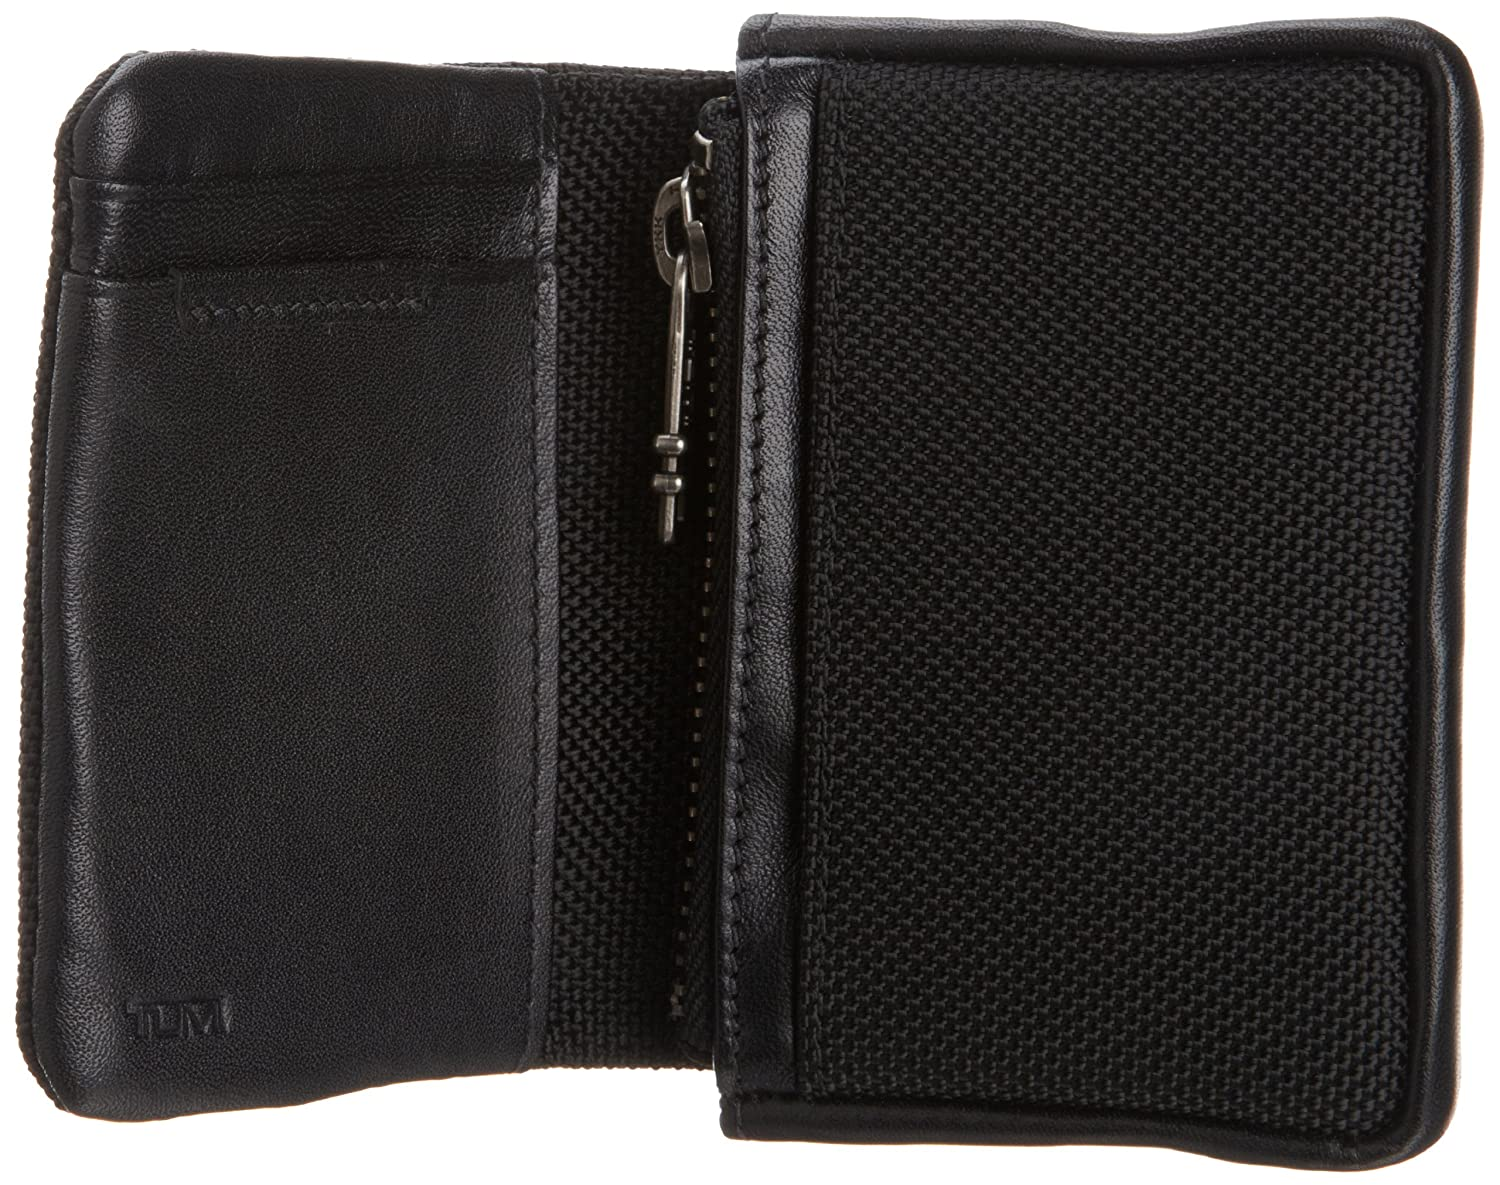 Amazon.com: Tumi Men\'s Bravo Compact Wallet, Black, One Size: Clothing